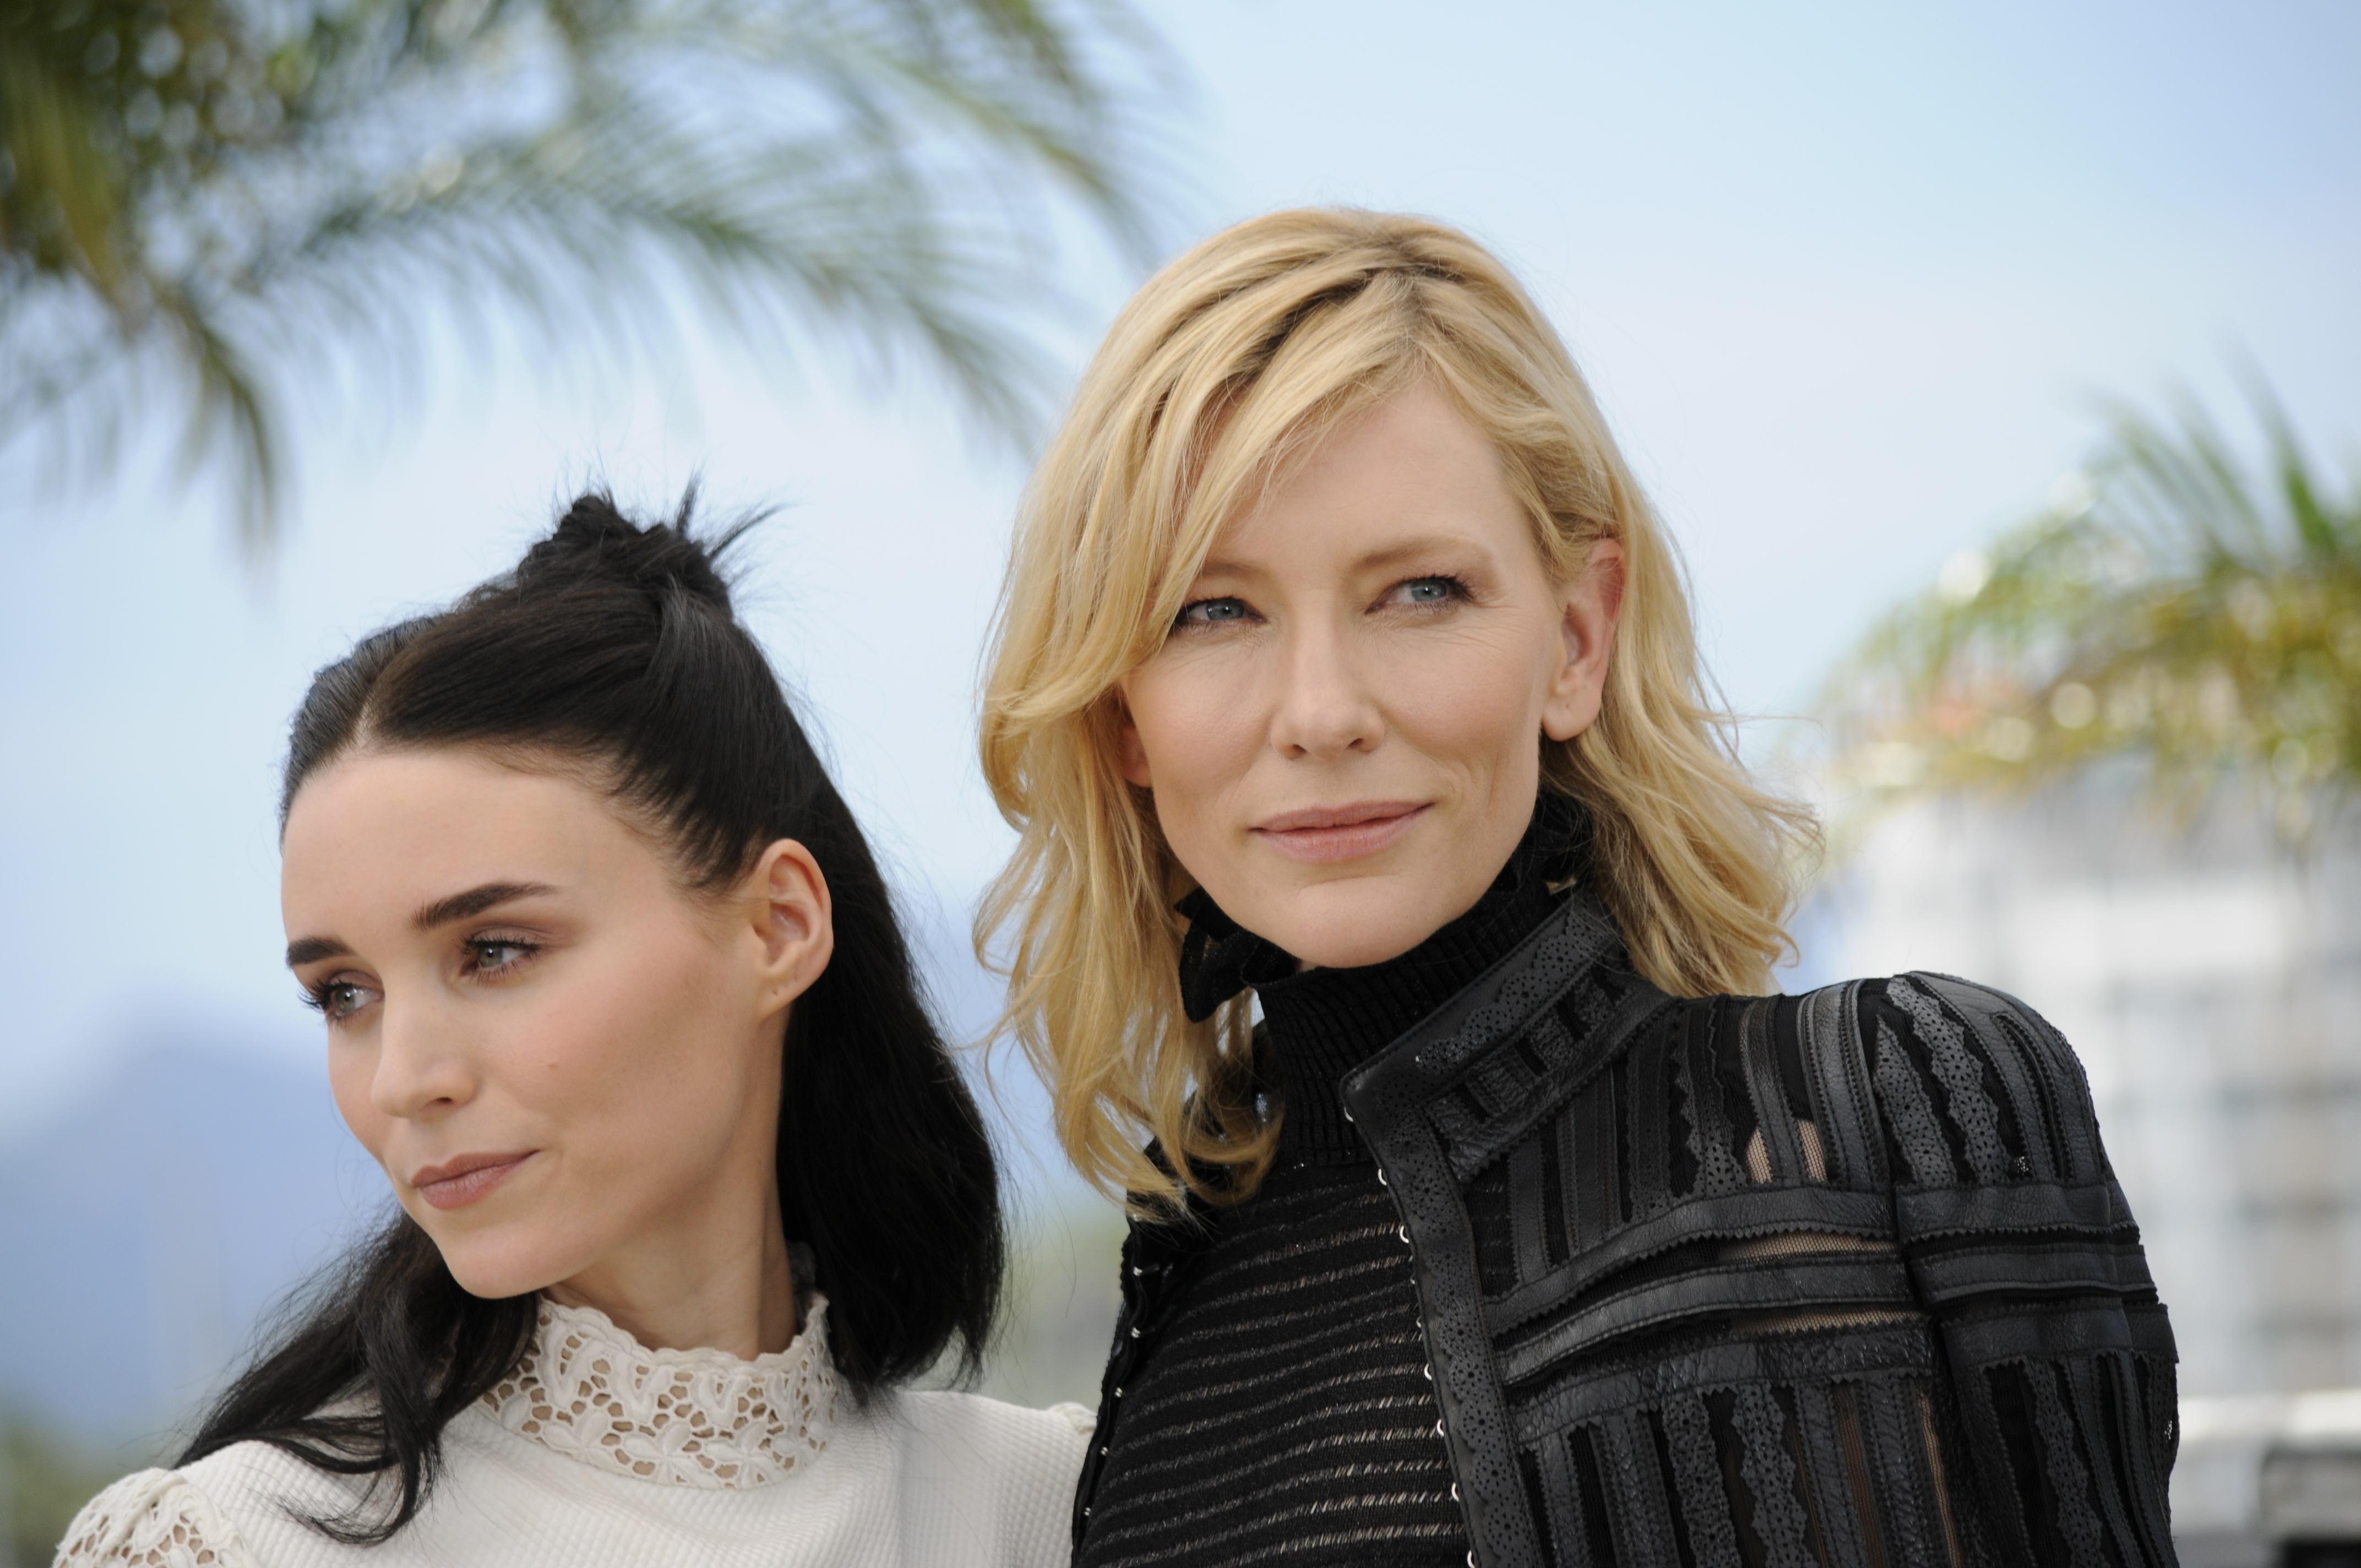 Cate Blanchett And Rooney Mara Fanfiction